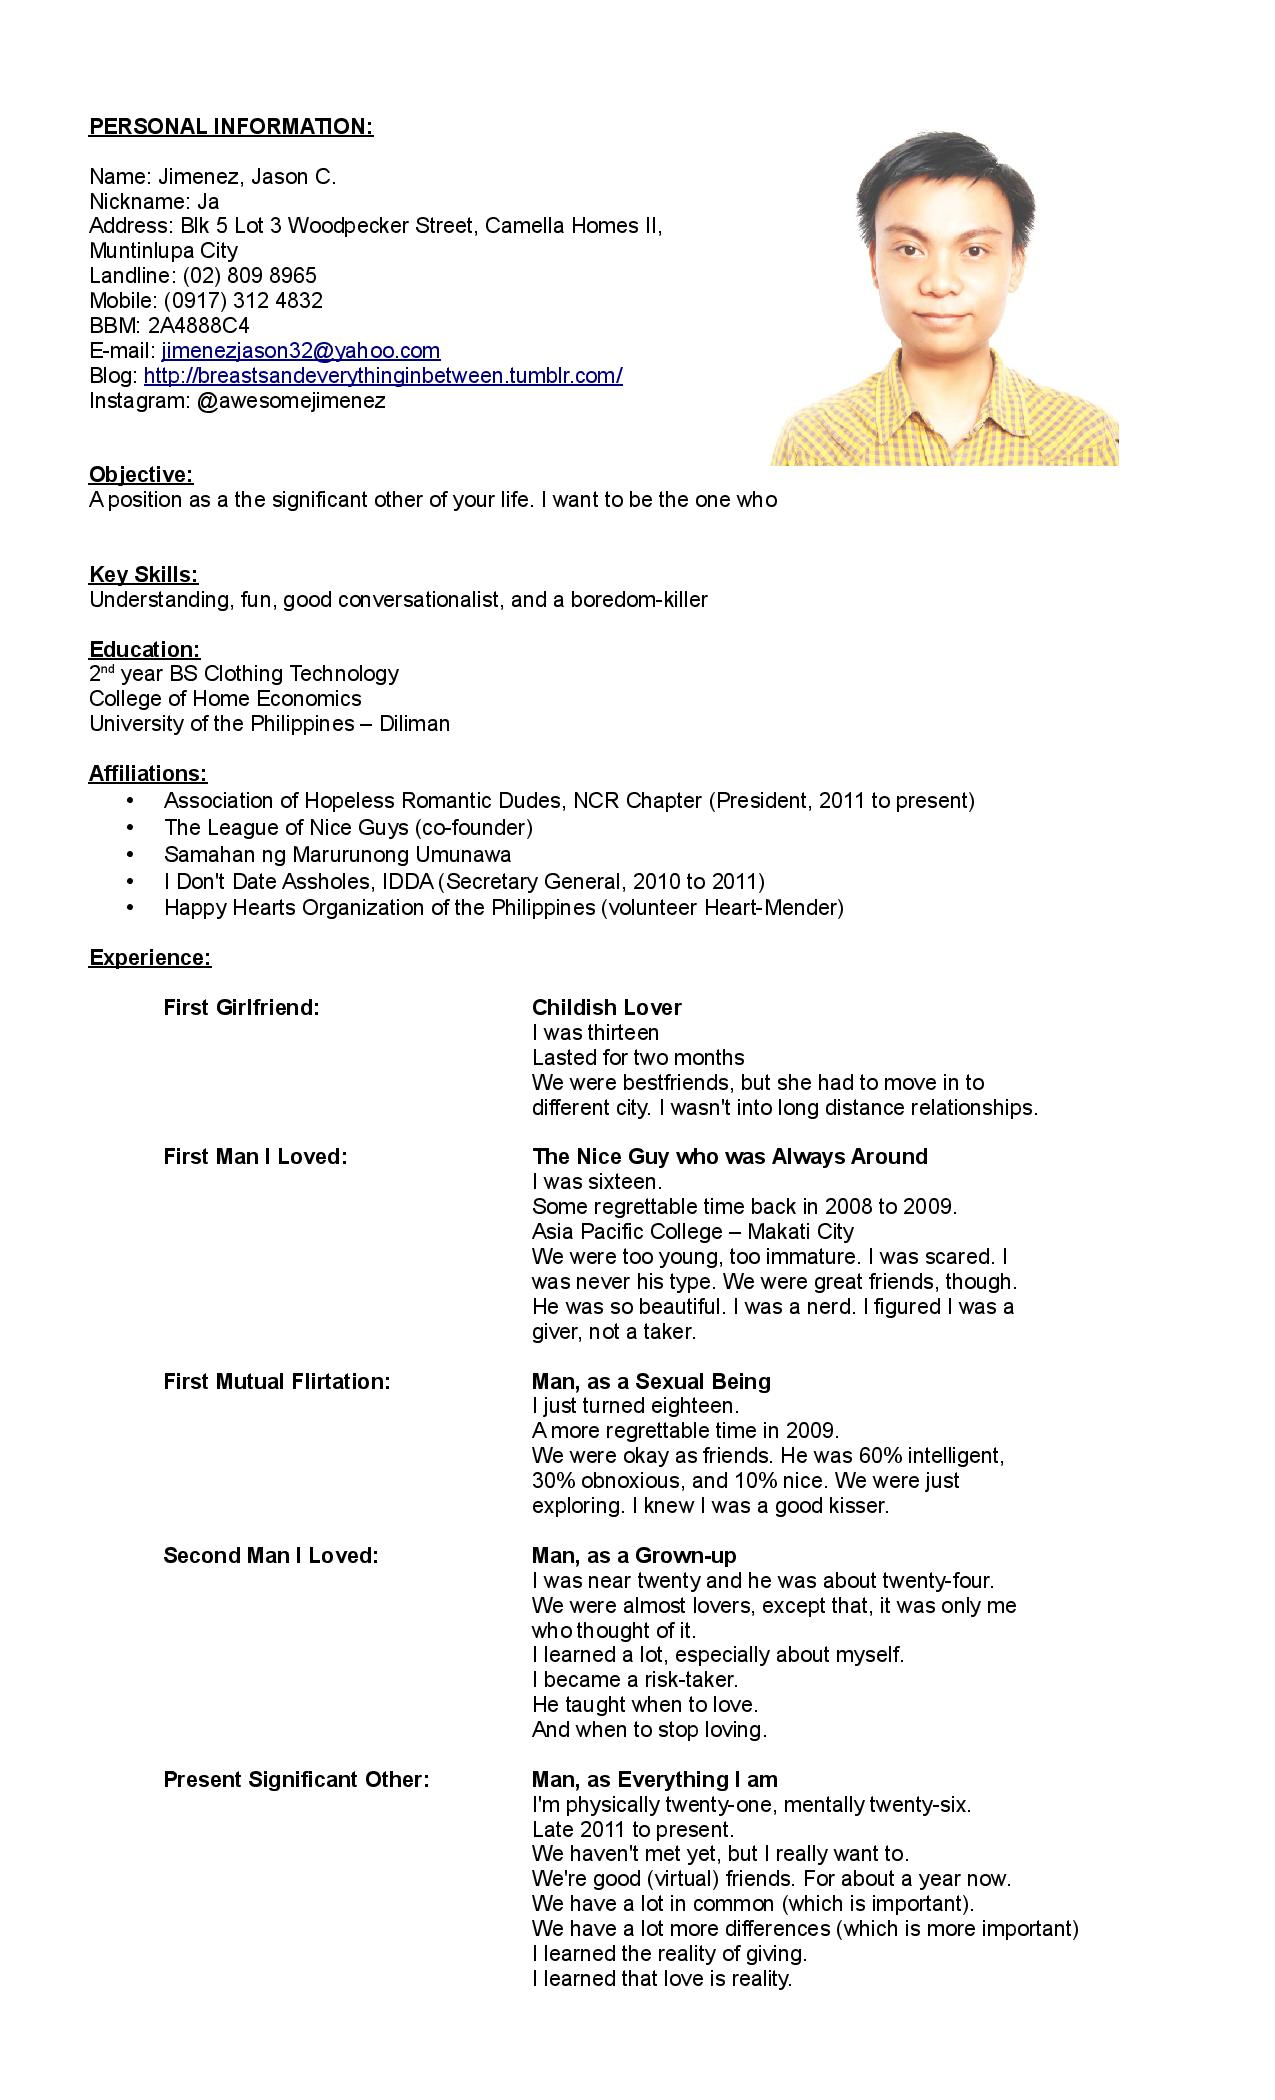 Oct Resume Application Resume An Application To Become Your Significant Other